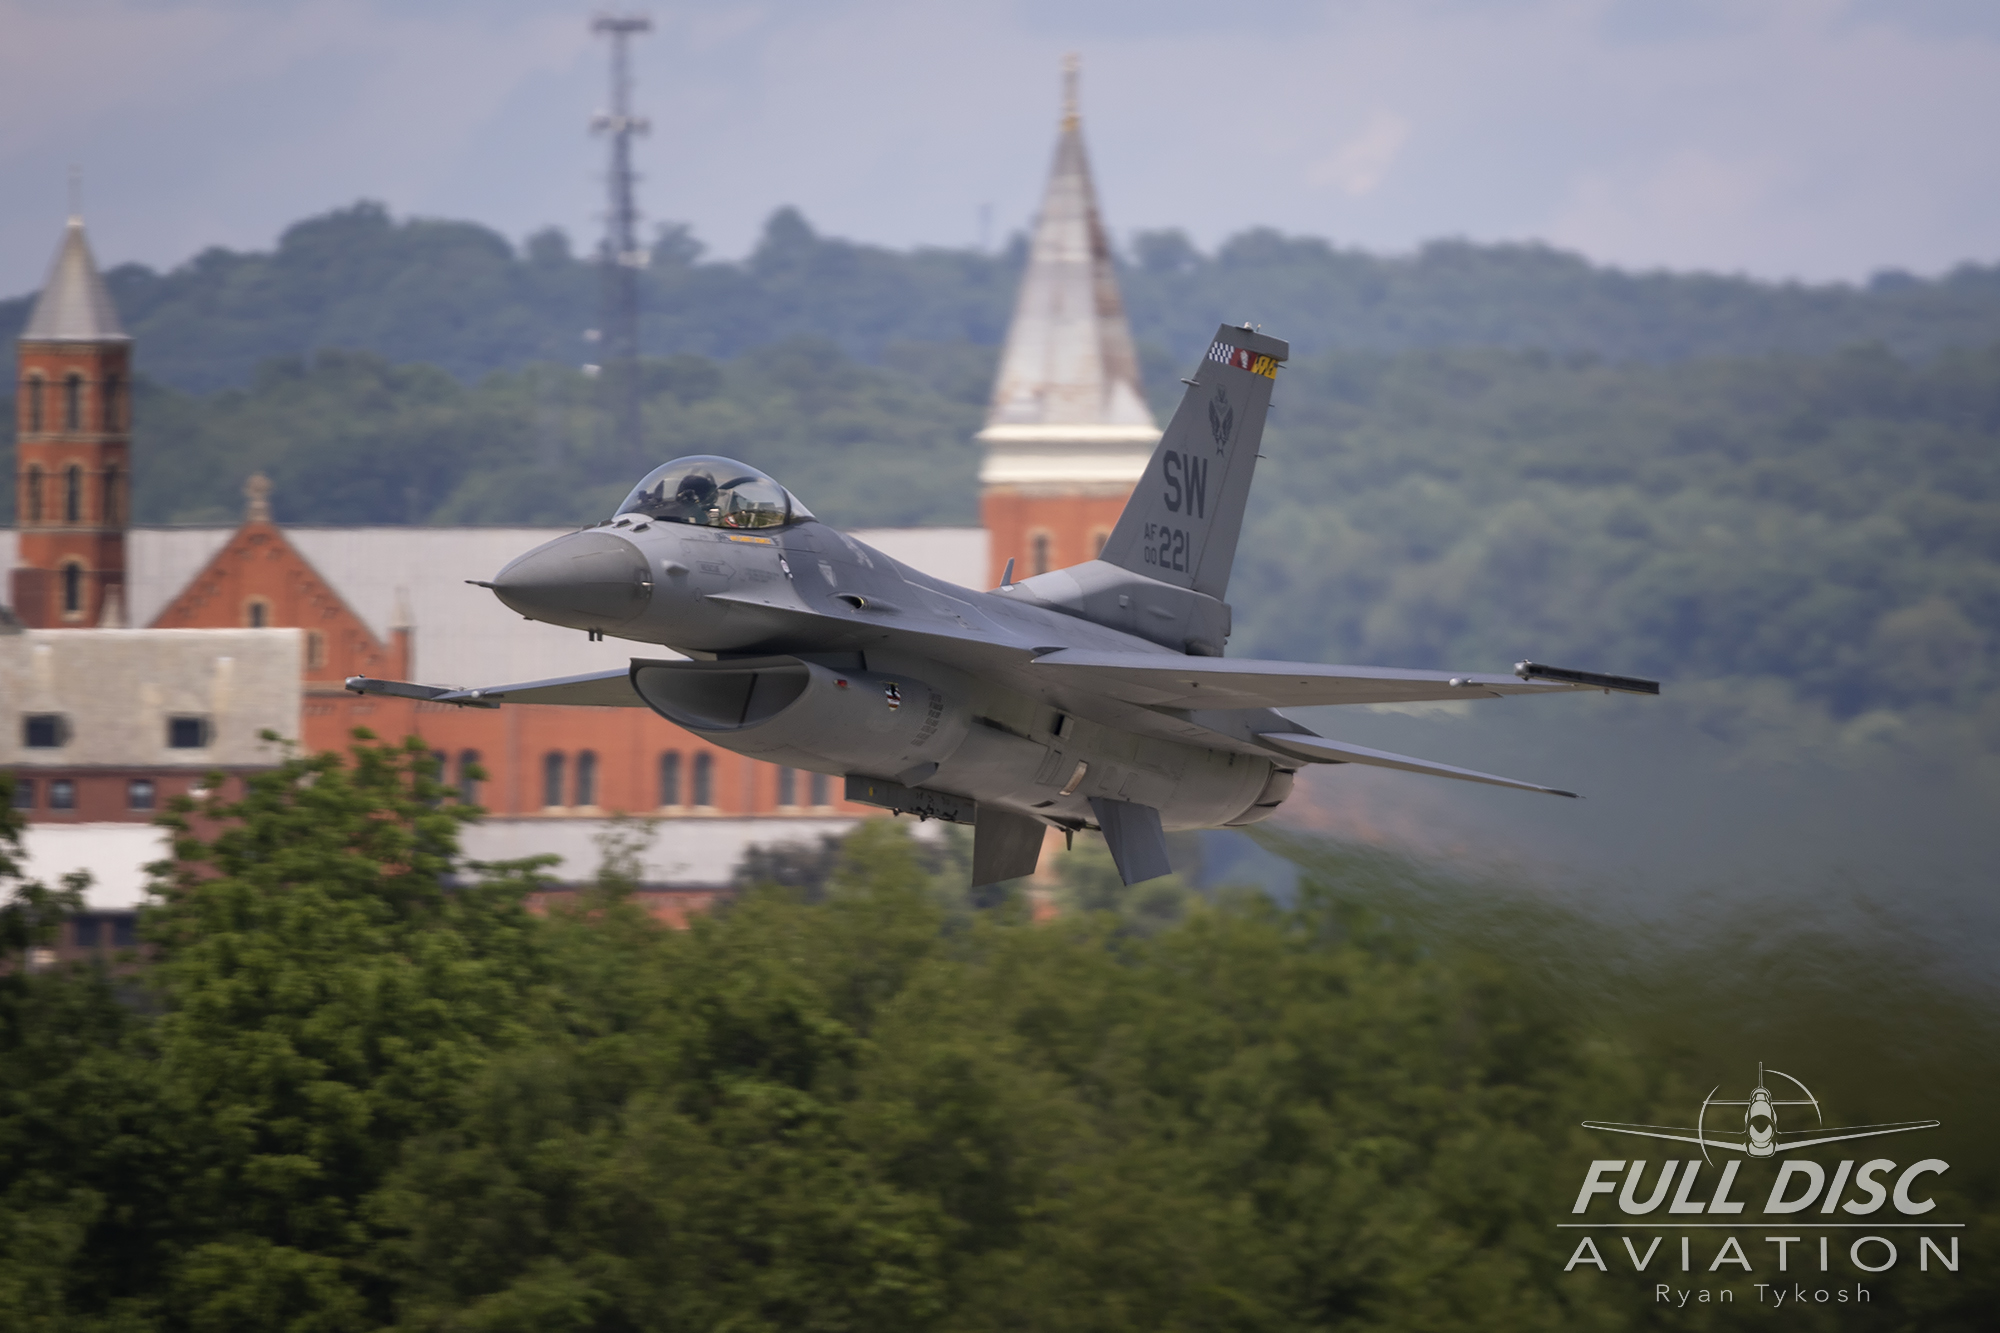 lbe19-fda-rtykosh-f16church.jpg